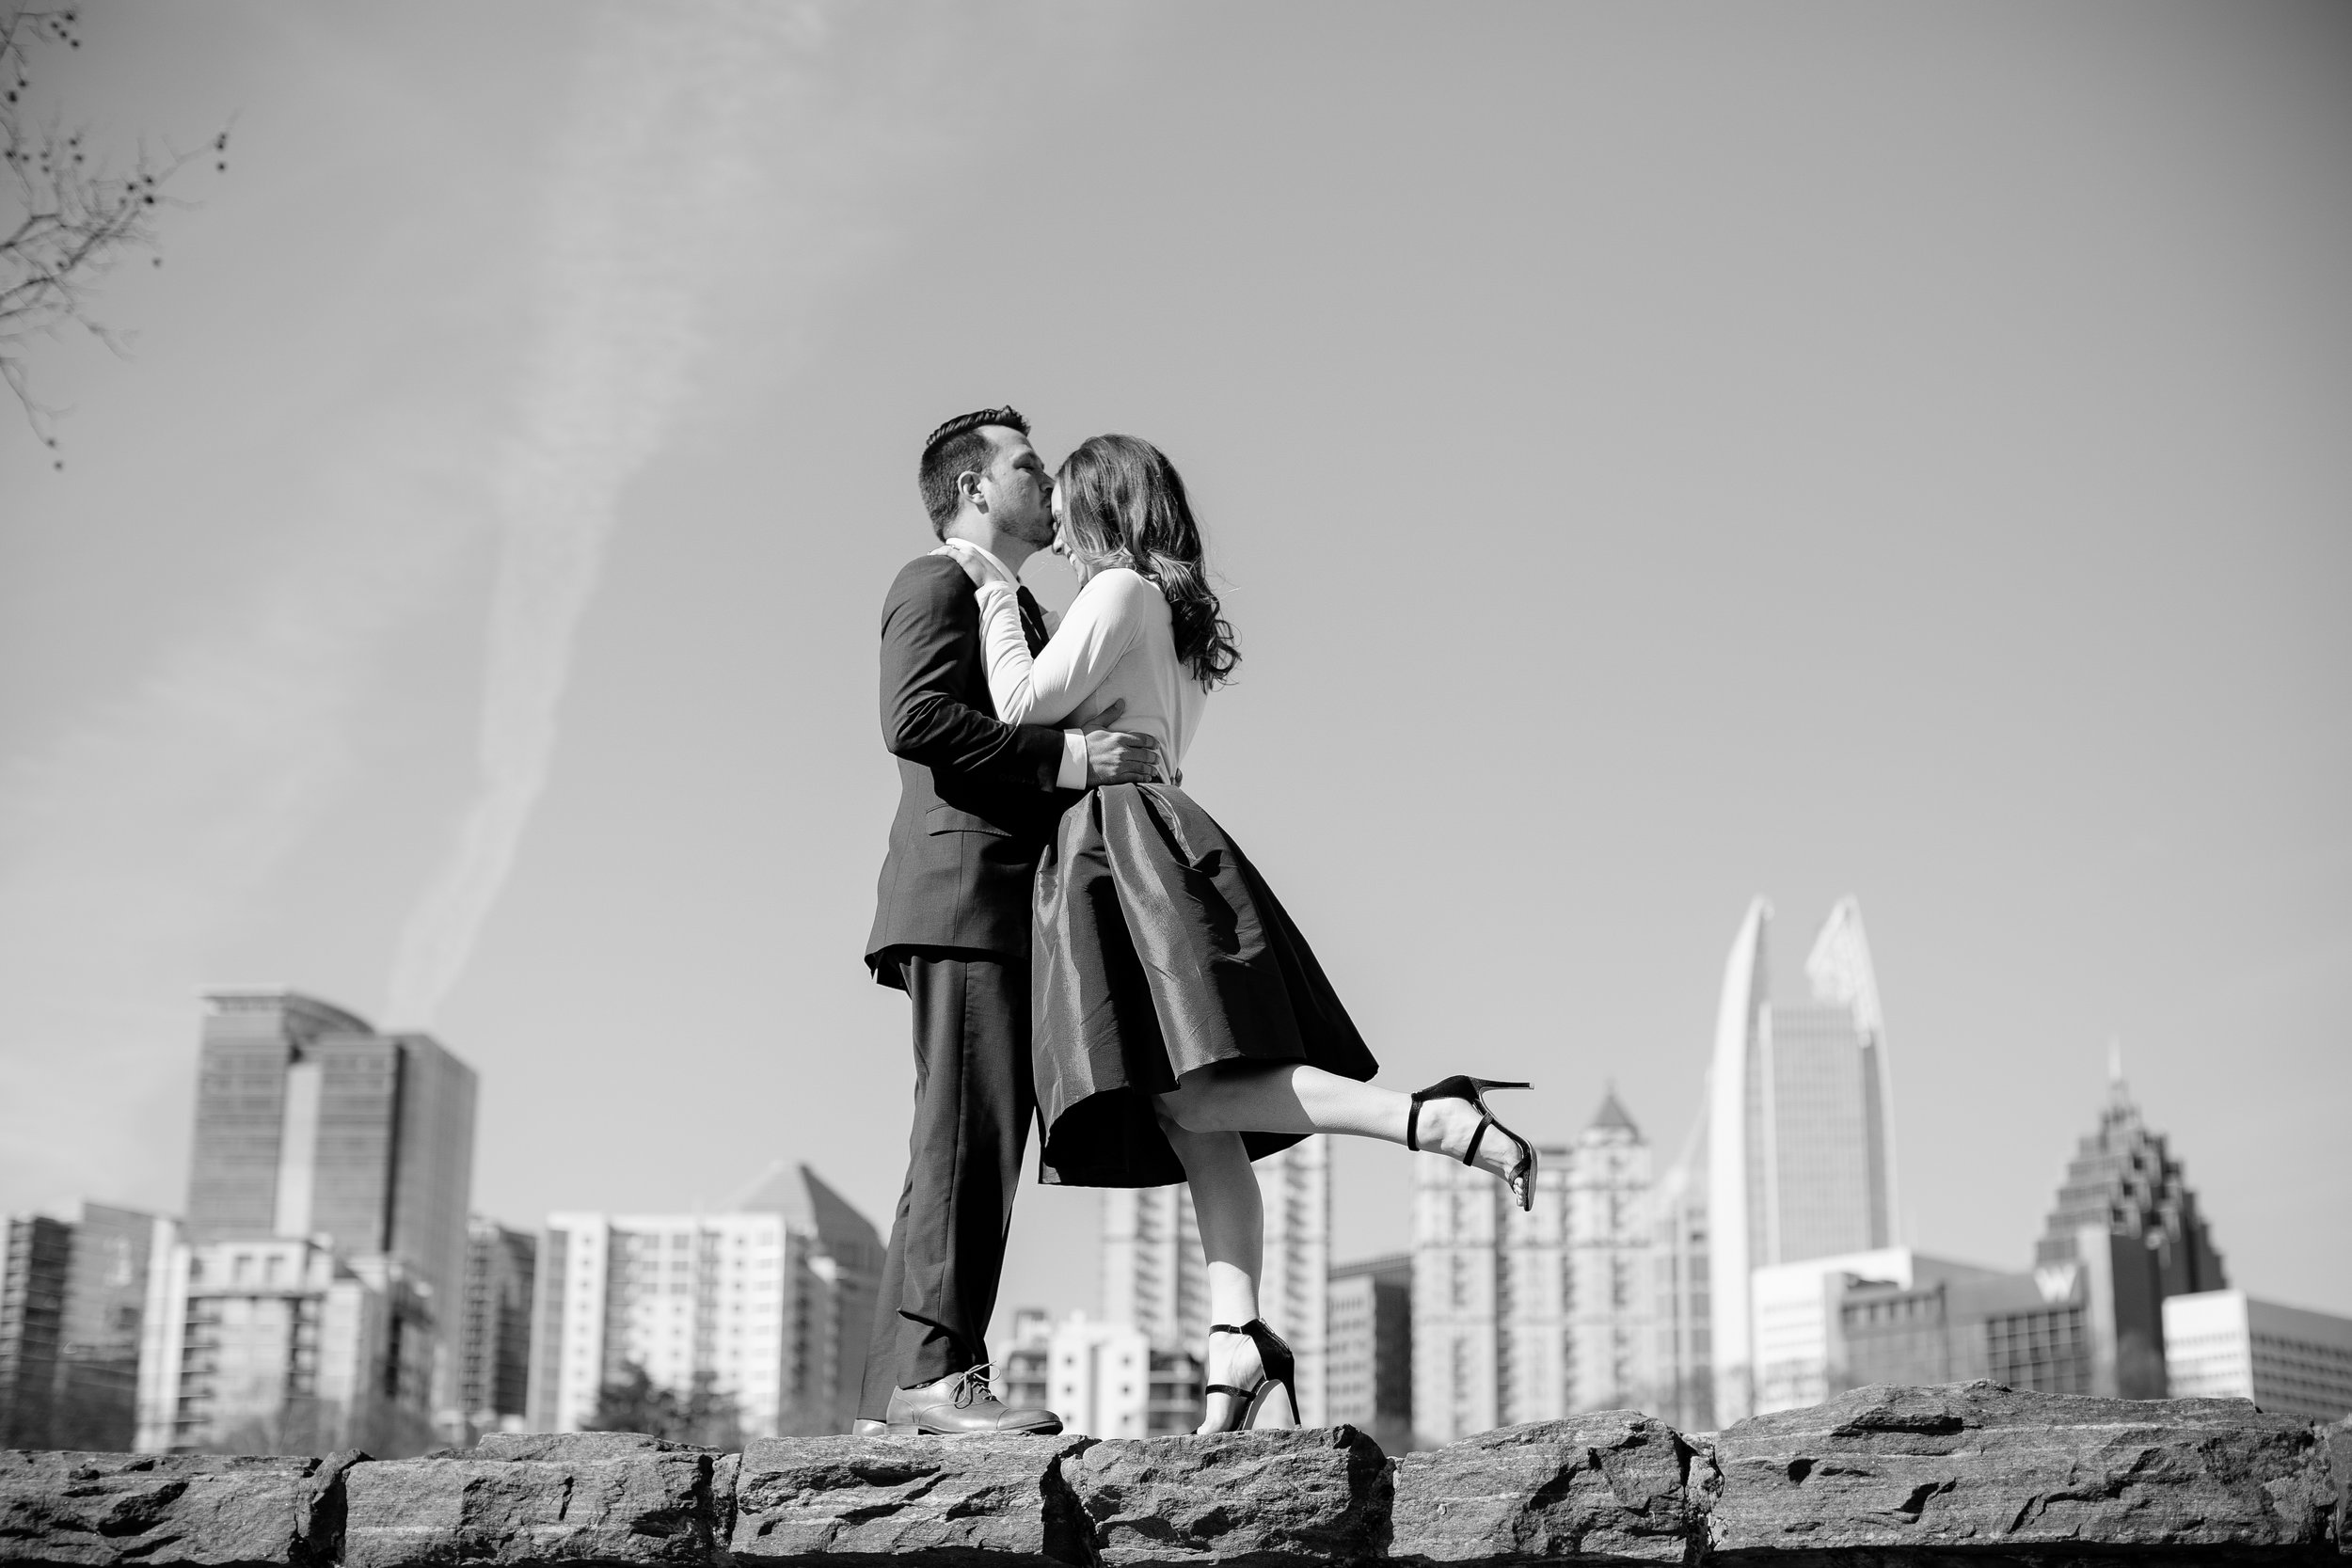 When Megan approached me for engagement photos, I was over-the-moon excited! Megan and I attended PA school together, which is also when she met the love of her life, Joe. After graduation, he swept her away to Boston for a Red Sox game where he popped the question!The two of them together exude such an energy, and they are sure to make you smile and laugh! With Megan's bubbly personality and Joe's spunky, carefree spirit, these two are a pair that cannot be matched. We spent much of the morning laughing and sharing stories while capturing their truest moments as they were just being themselves.Megan, I am so honored you chose me to share the beginning of your lifelong journey with Joe. You guys are the real deal. I cannot wait until next January (and Vegas, baby!). I hope you enjoy these as much as I do!